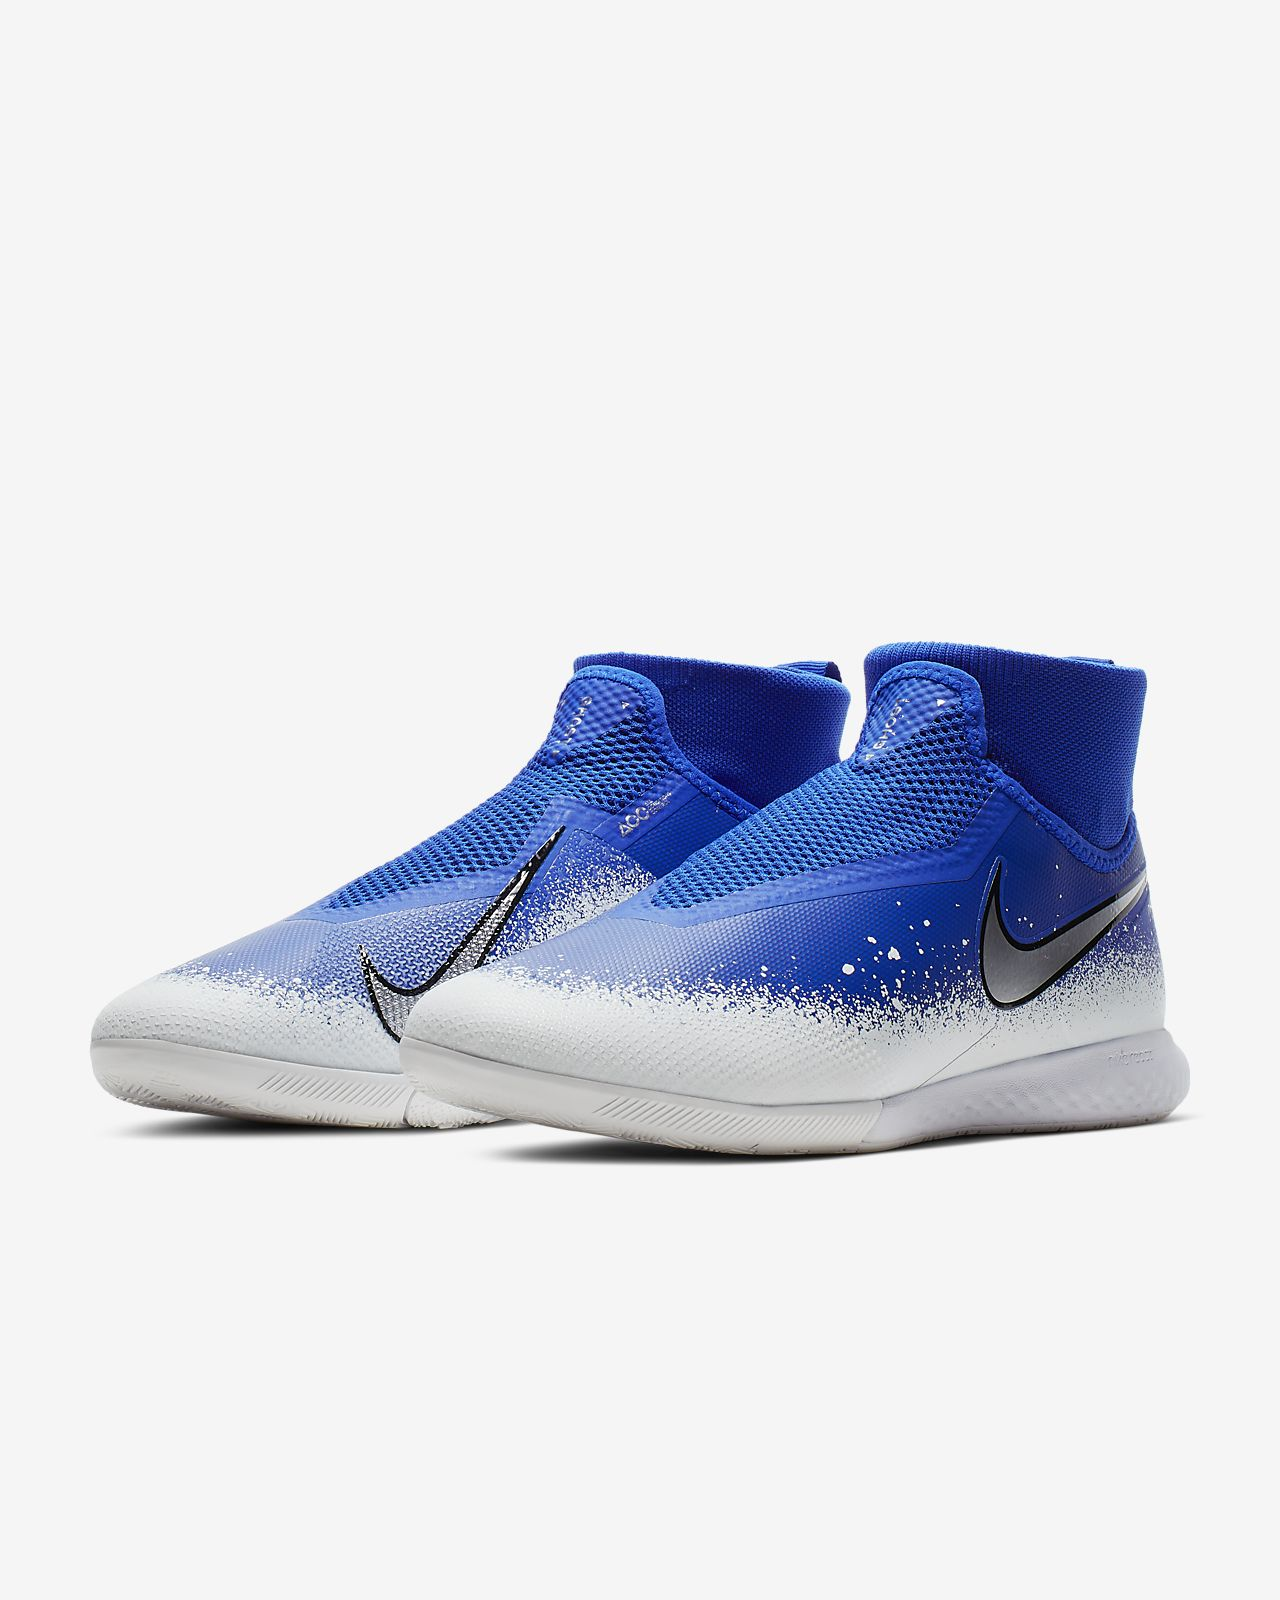 be8fb65a1d77 ... Nike React Phantom Vision Pro Dynamic Fit IC Indoor Court Football Boot